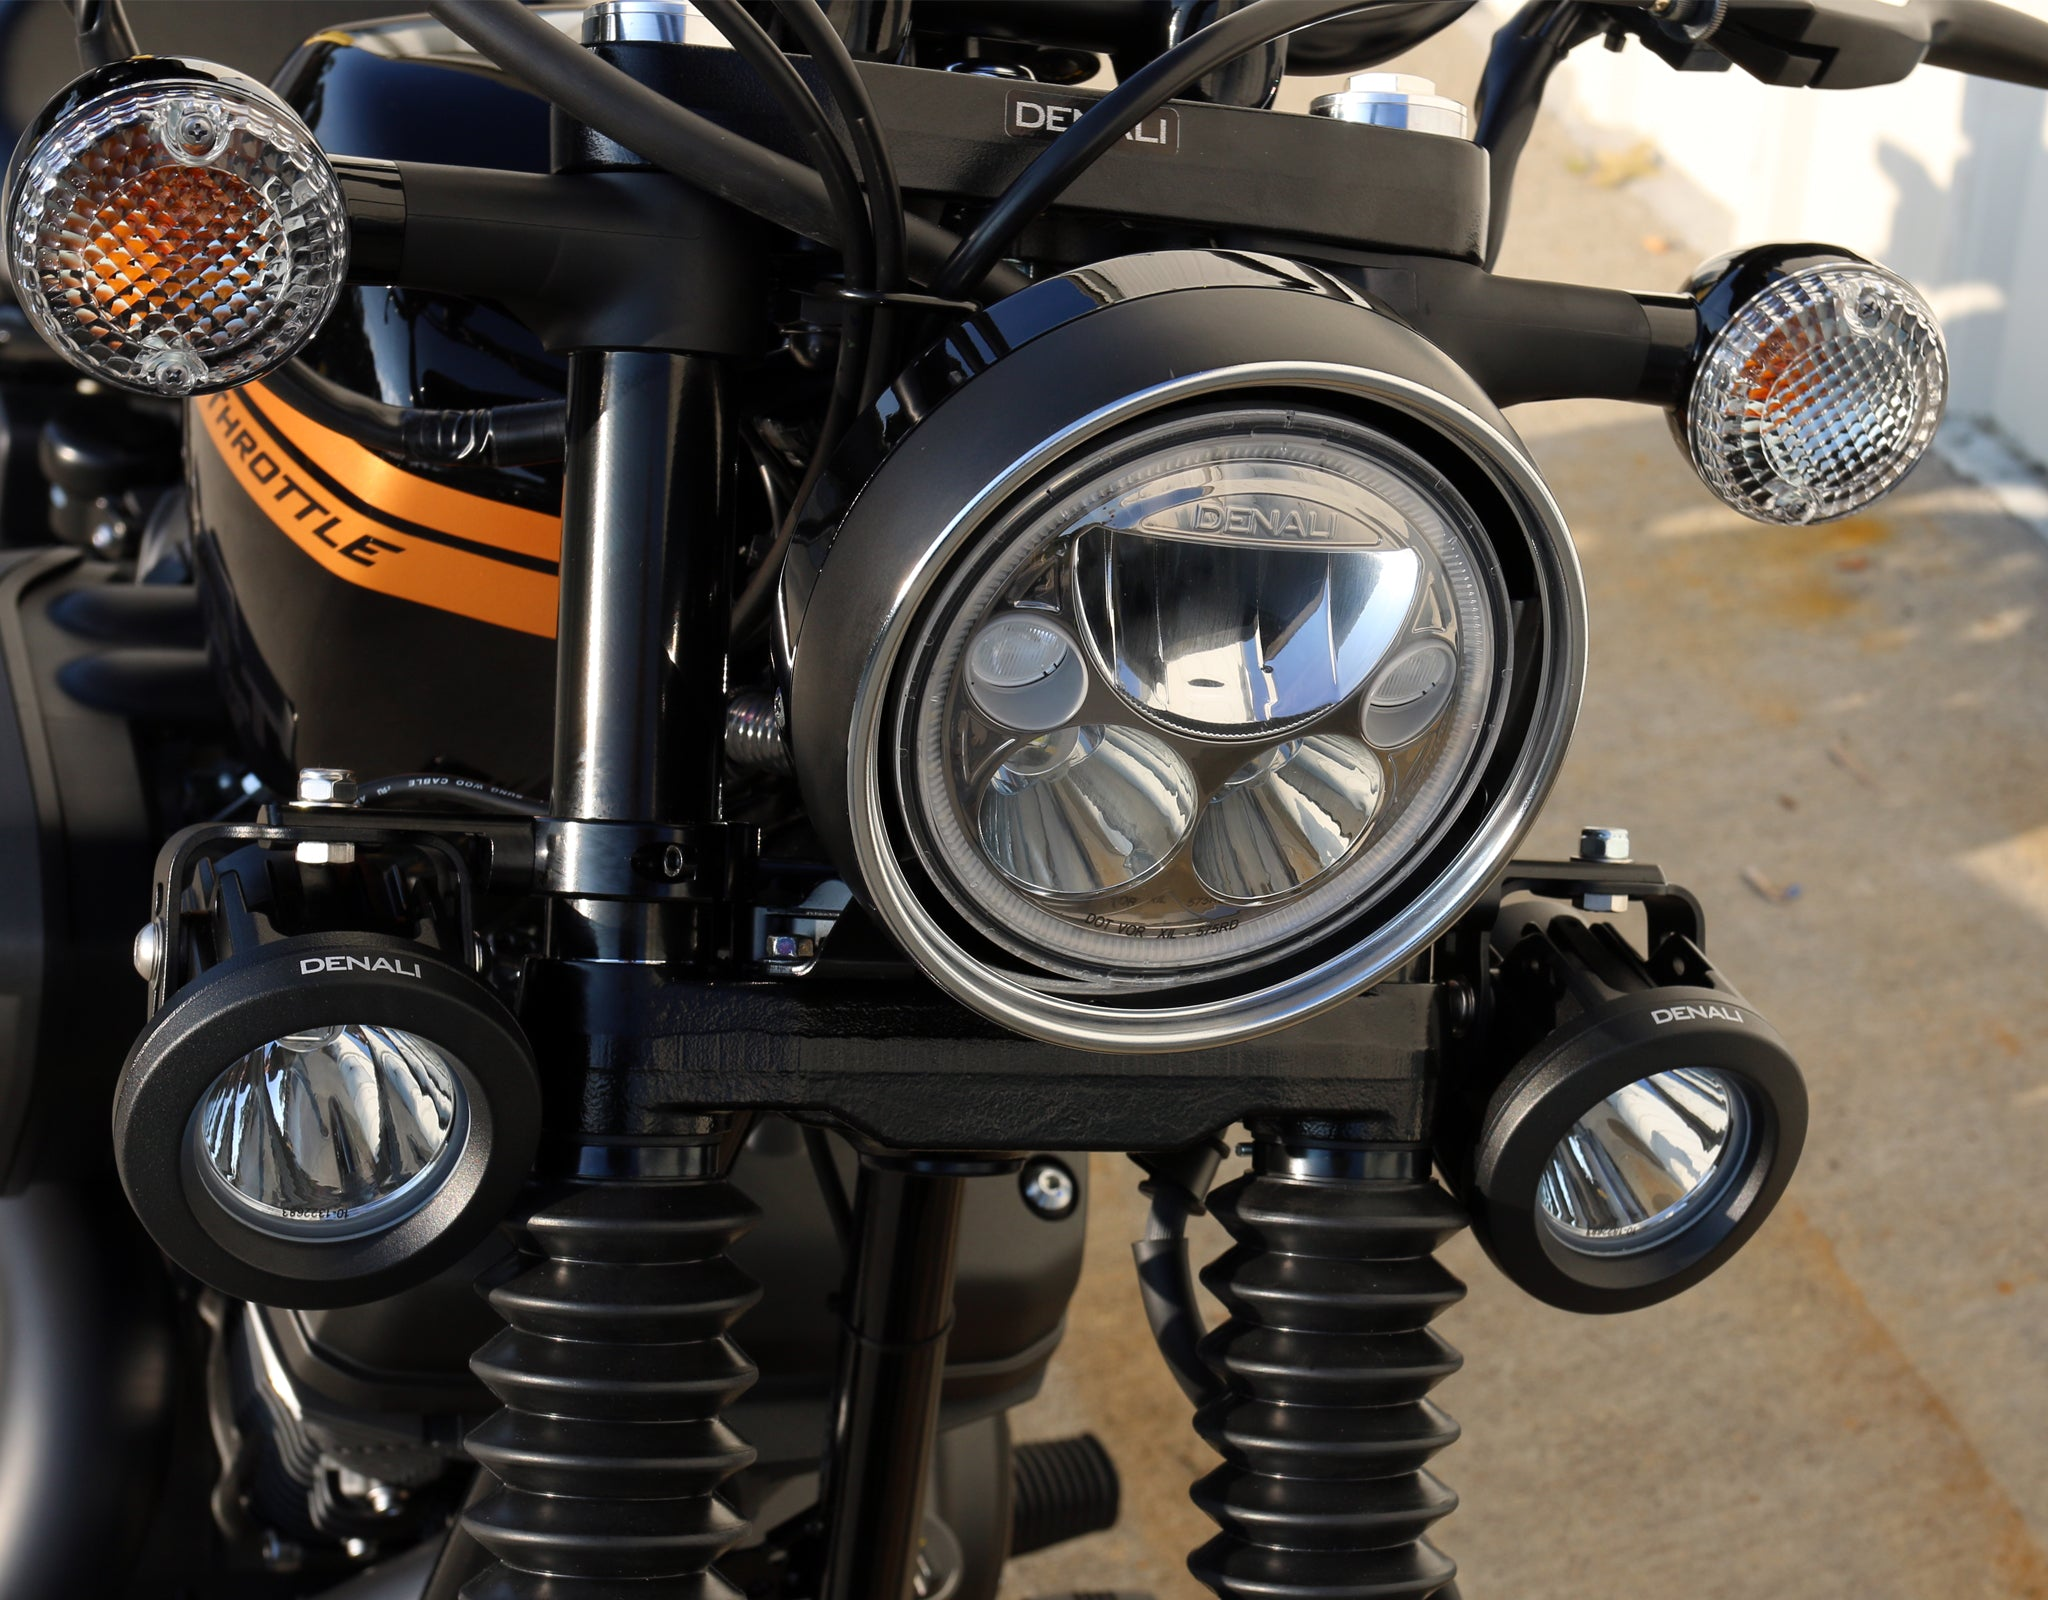 M7 LED Headlight mounted in factory headlight bucket & DR1 Light Kit mounted using the Universal Fork Tube Light Mount